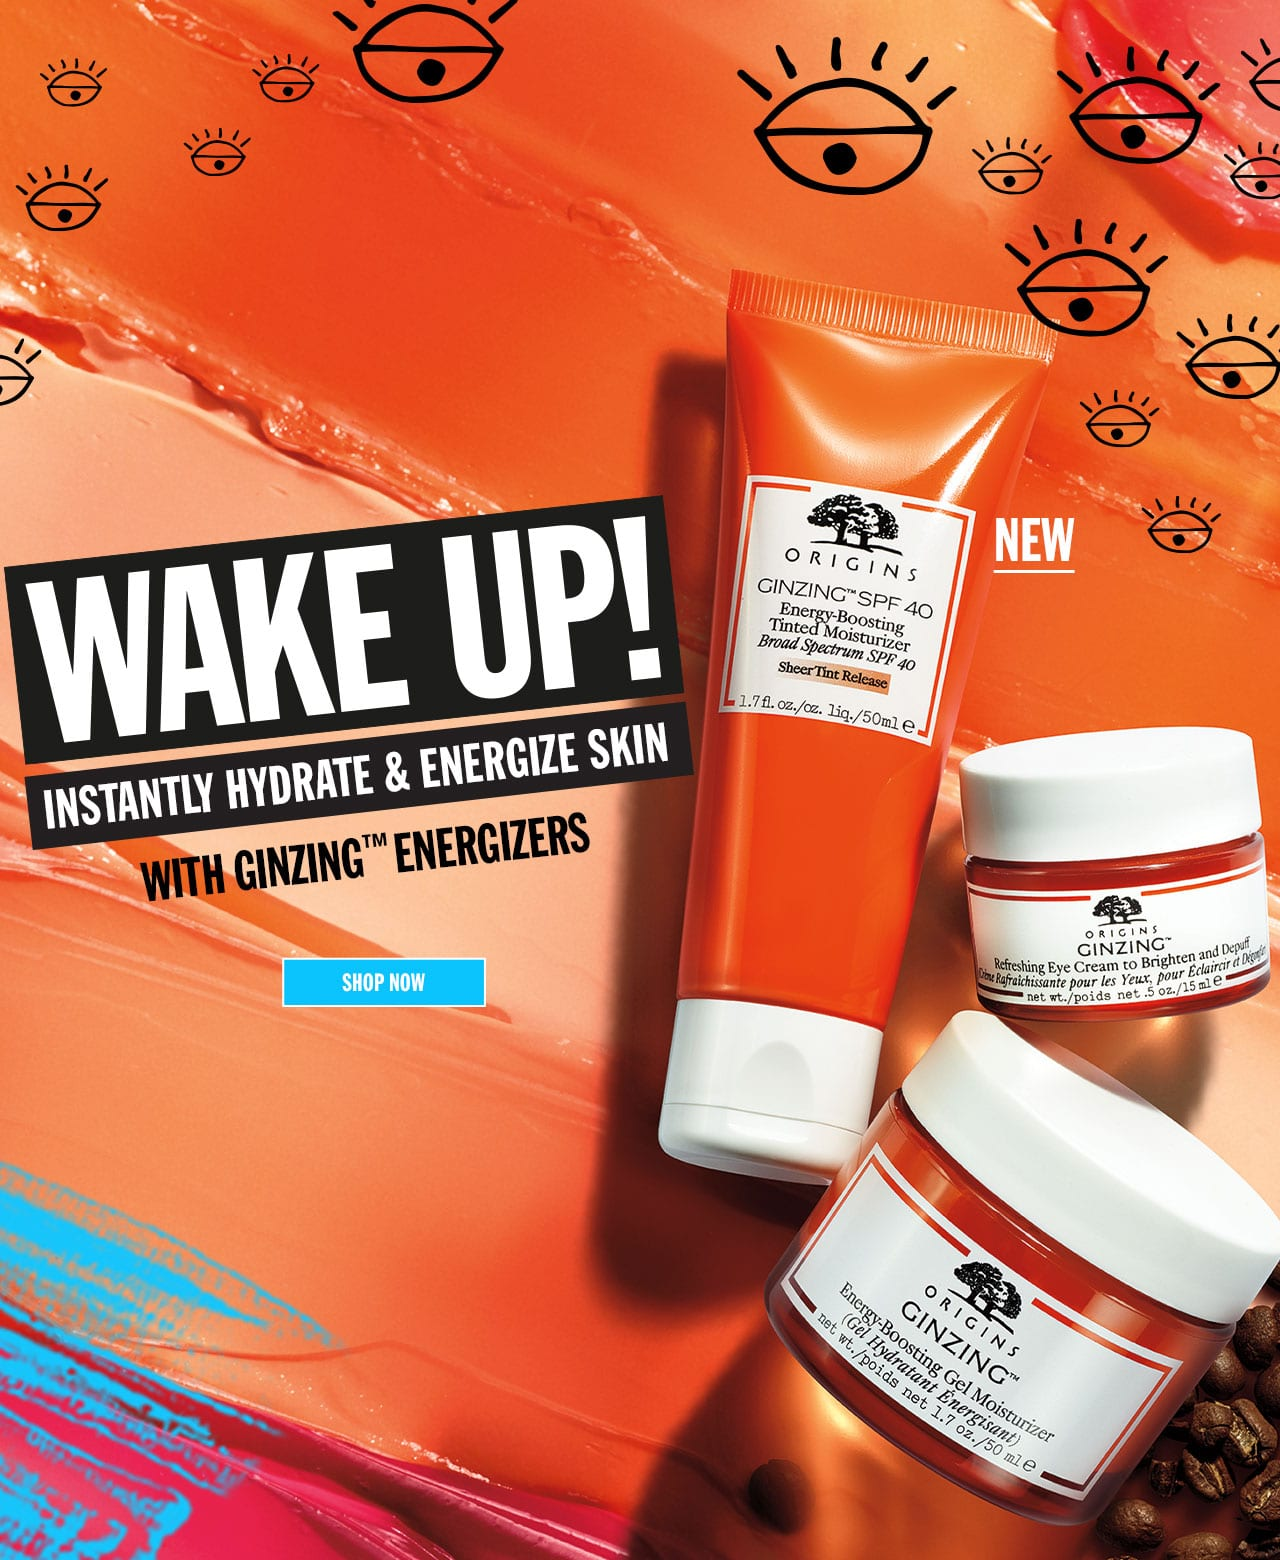 New Origins Ginzing energy-boosting gel moisturizer and SPF 40 tinted moiturizer